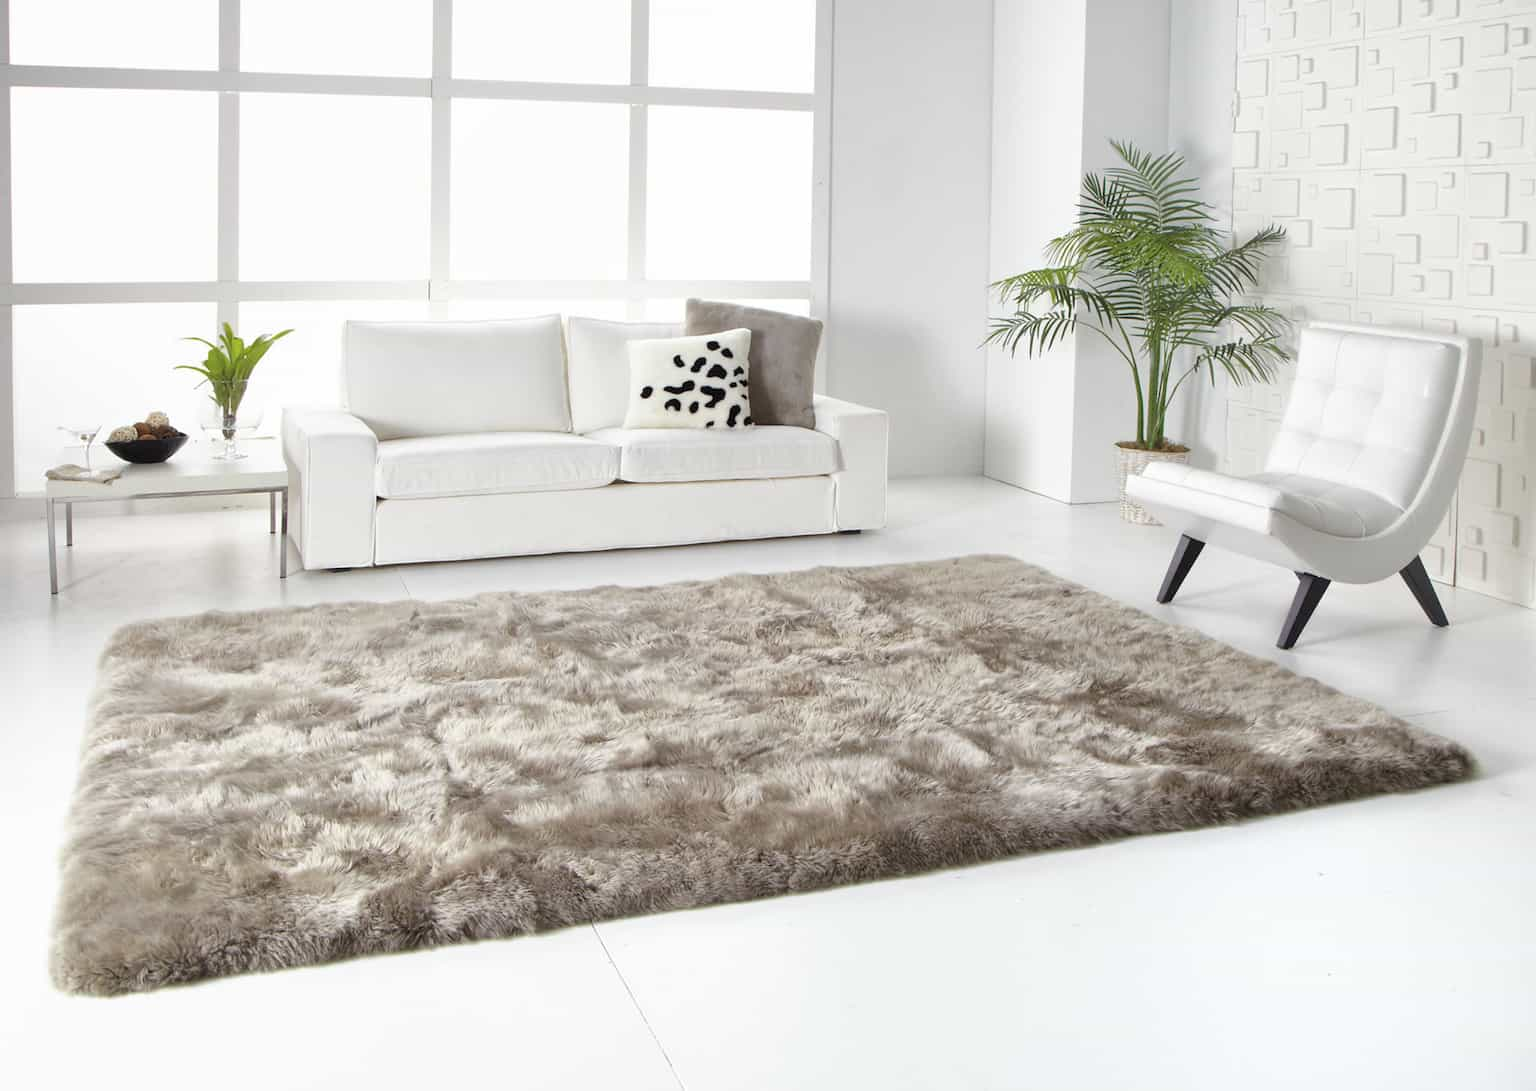 Elegance Living Room with Minimalist Chairs and Soft Sheepskin Fur Rug